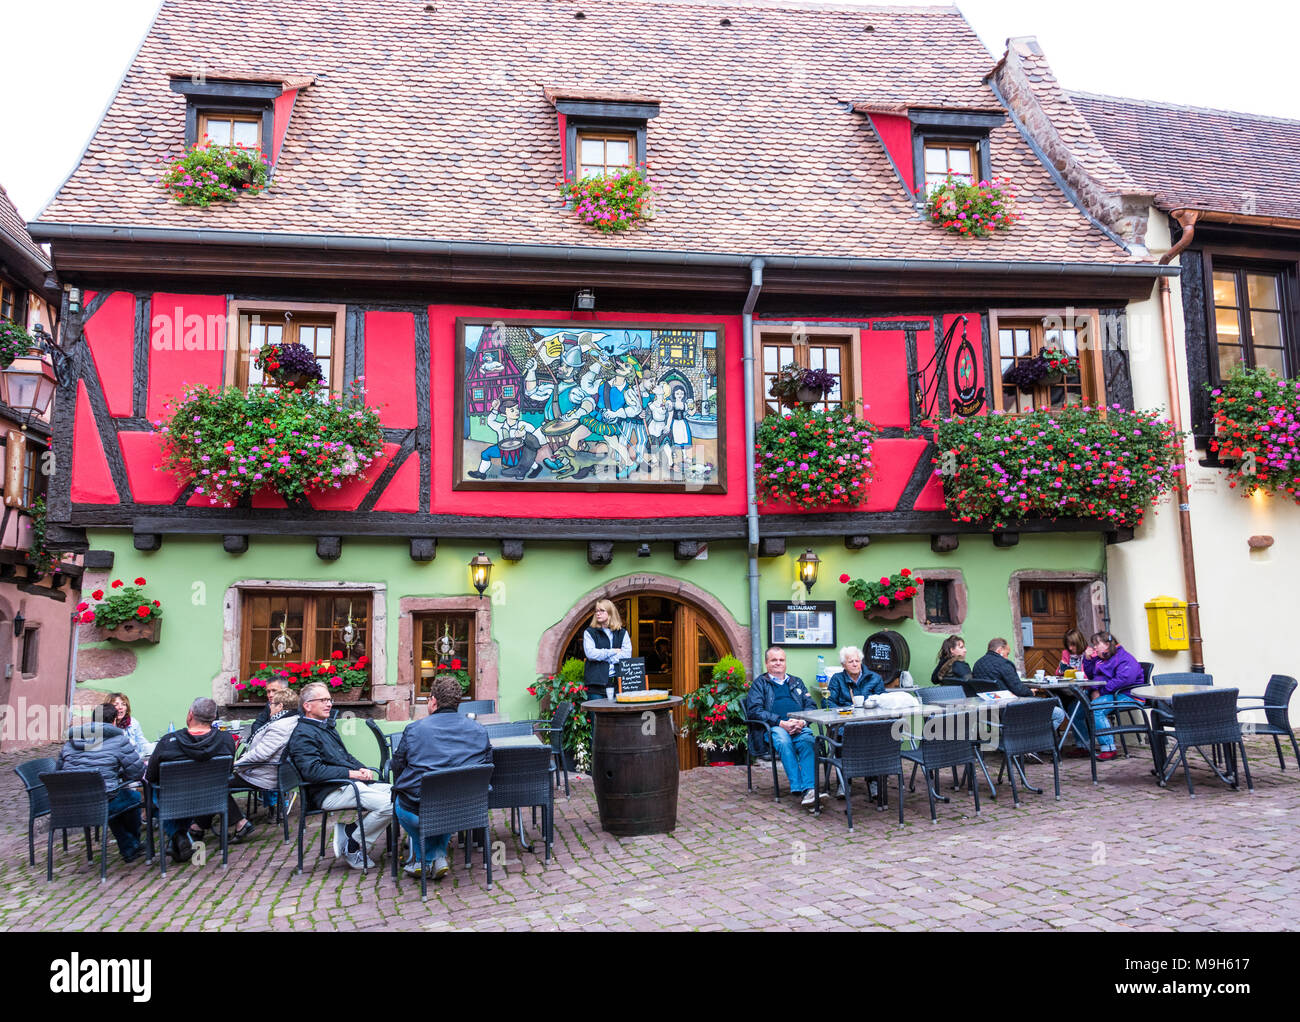 Traditional restaurant in the medieval town of Riquewihr, Alsatian Wine Route, France - Stock Image